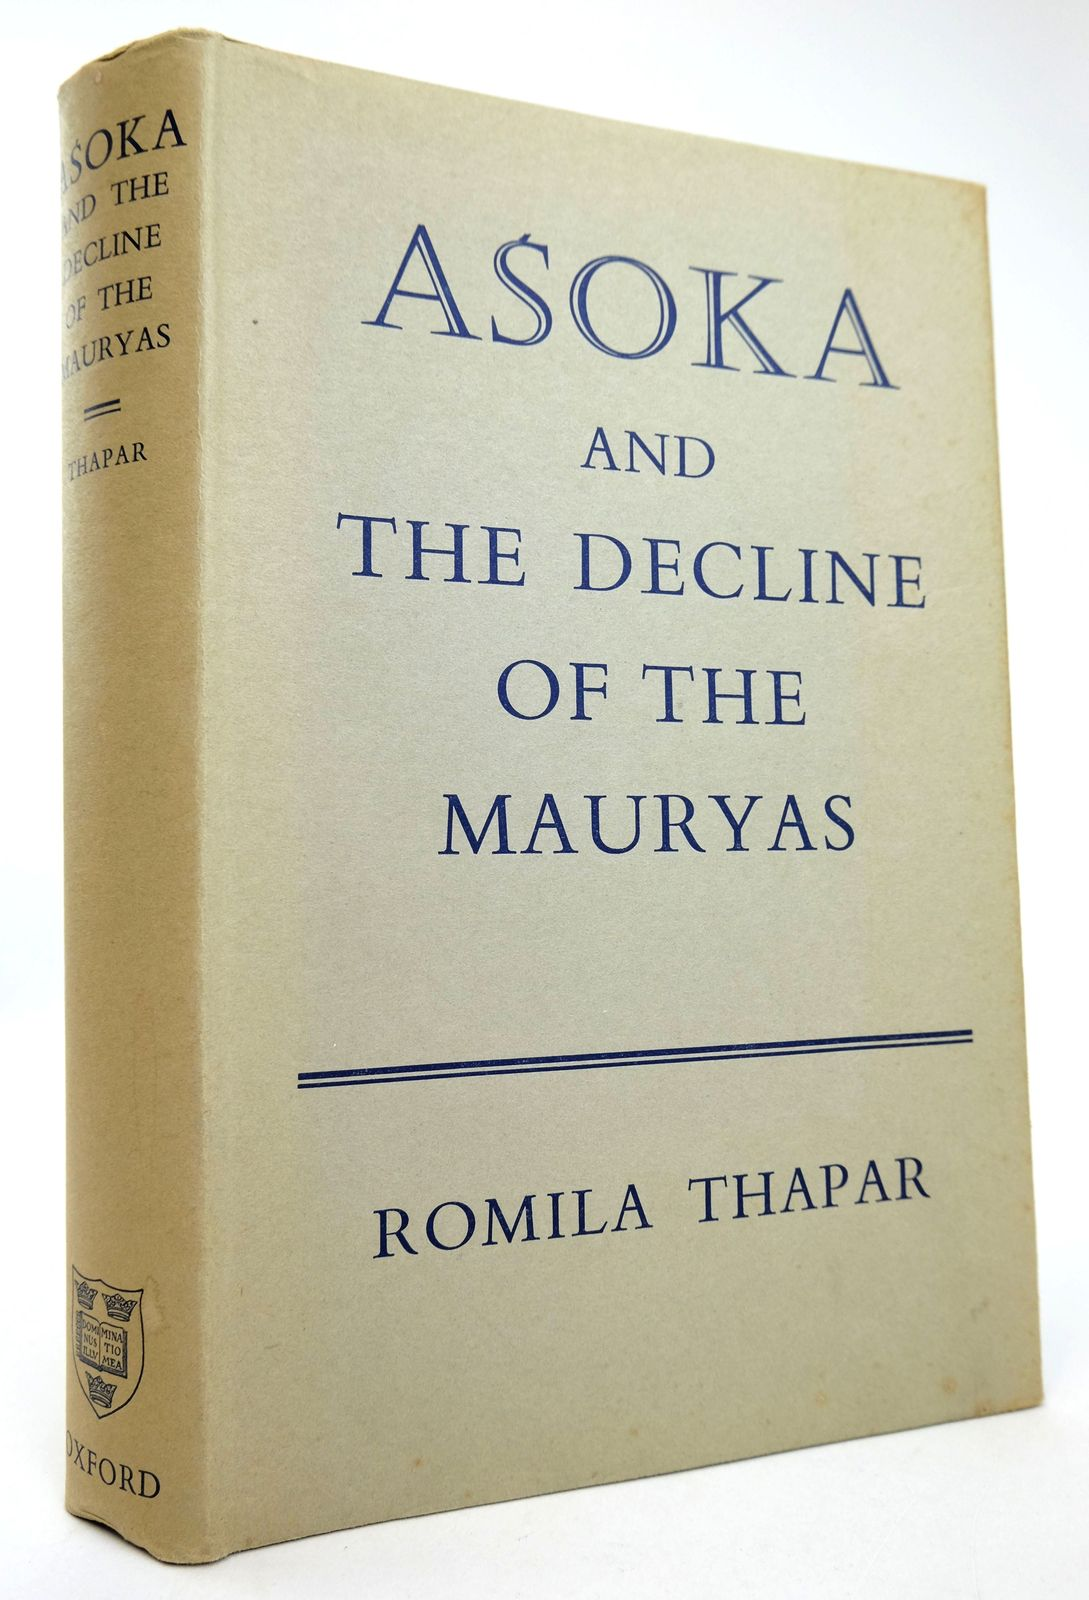 Photo of ASOKA AND THE DECLINE OF THE MAURYAS written by Thapar, Romila published by Oxford University Press (STOCK CODE: 1818897)  for sale by Stella & Rose's Books